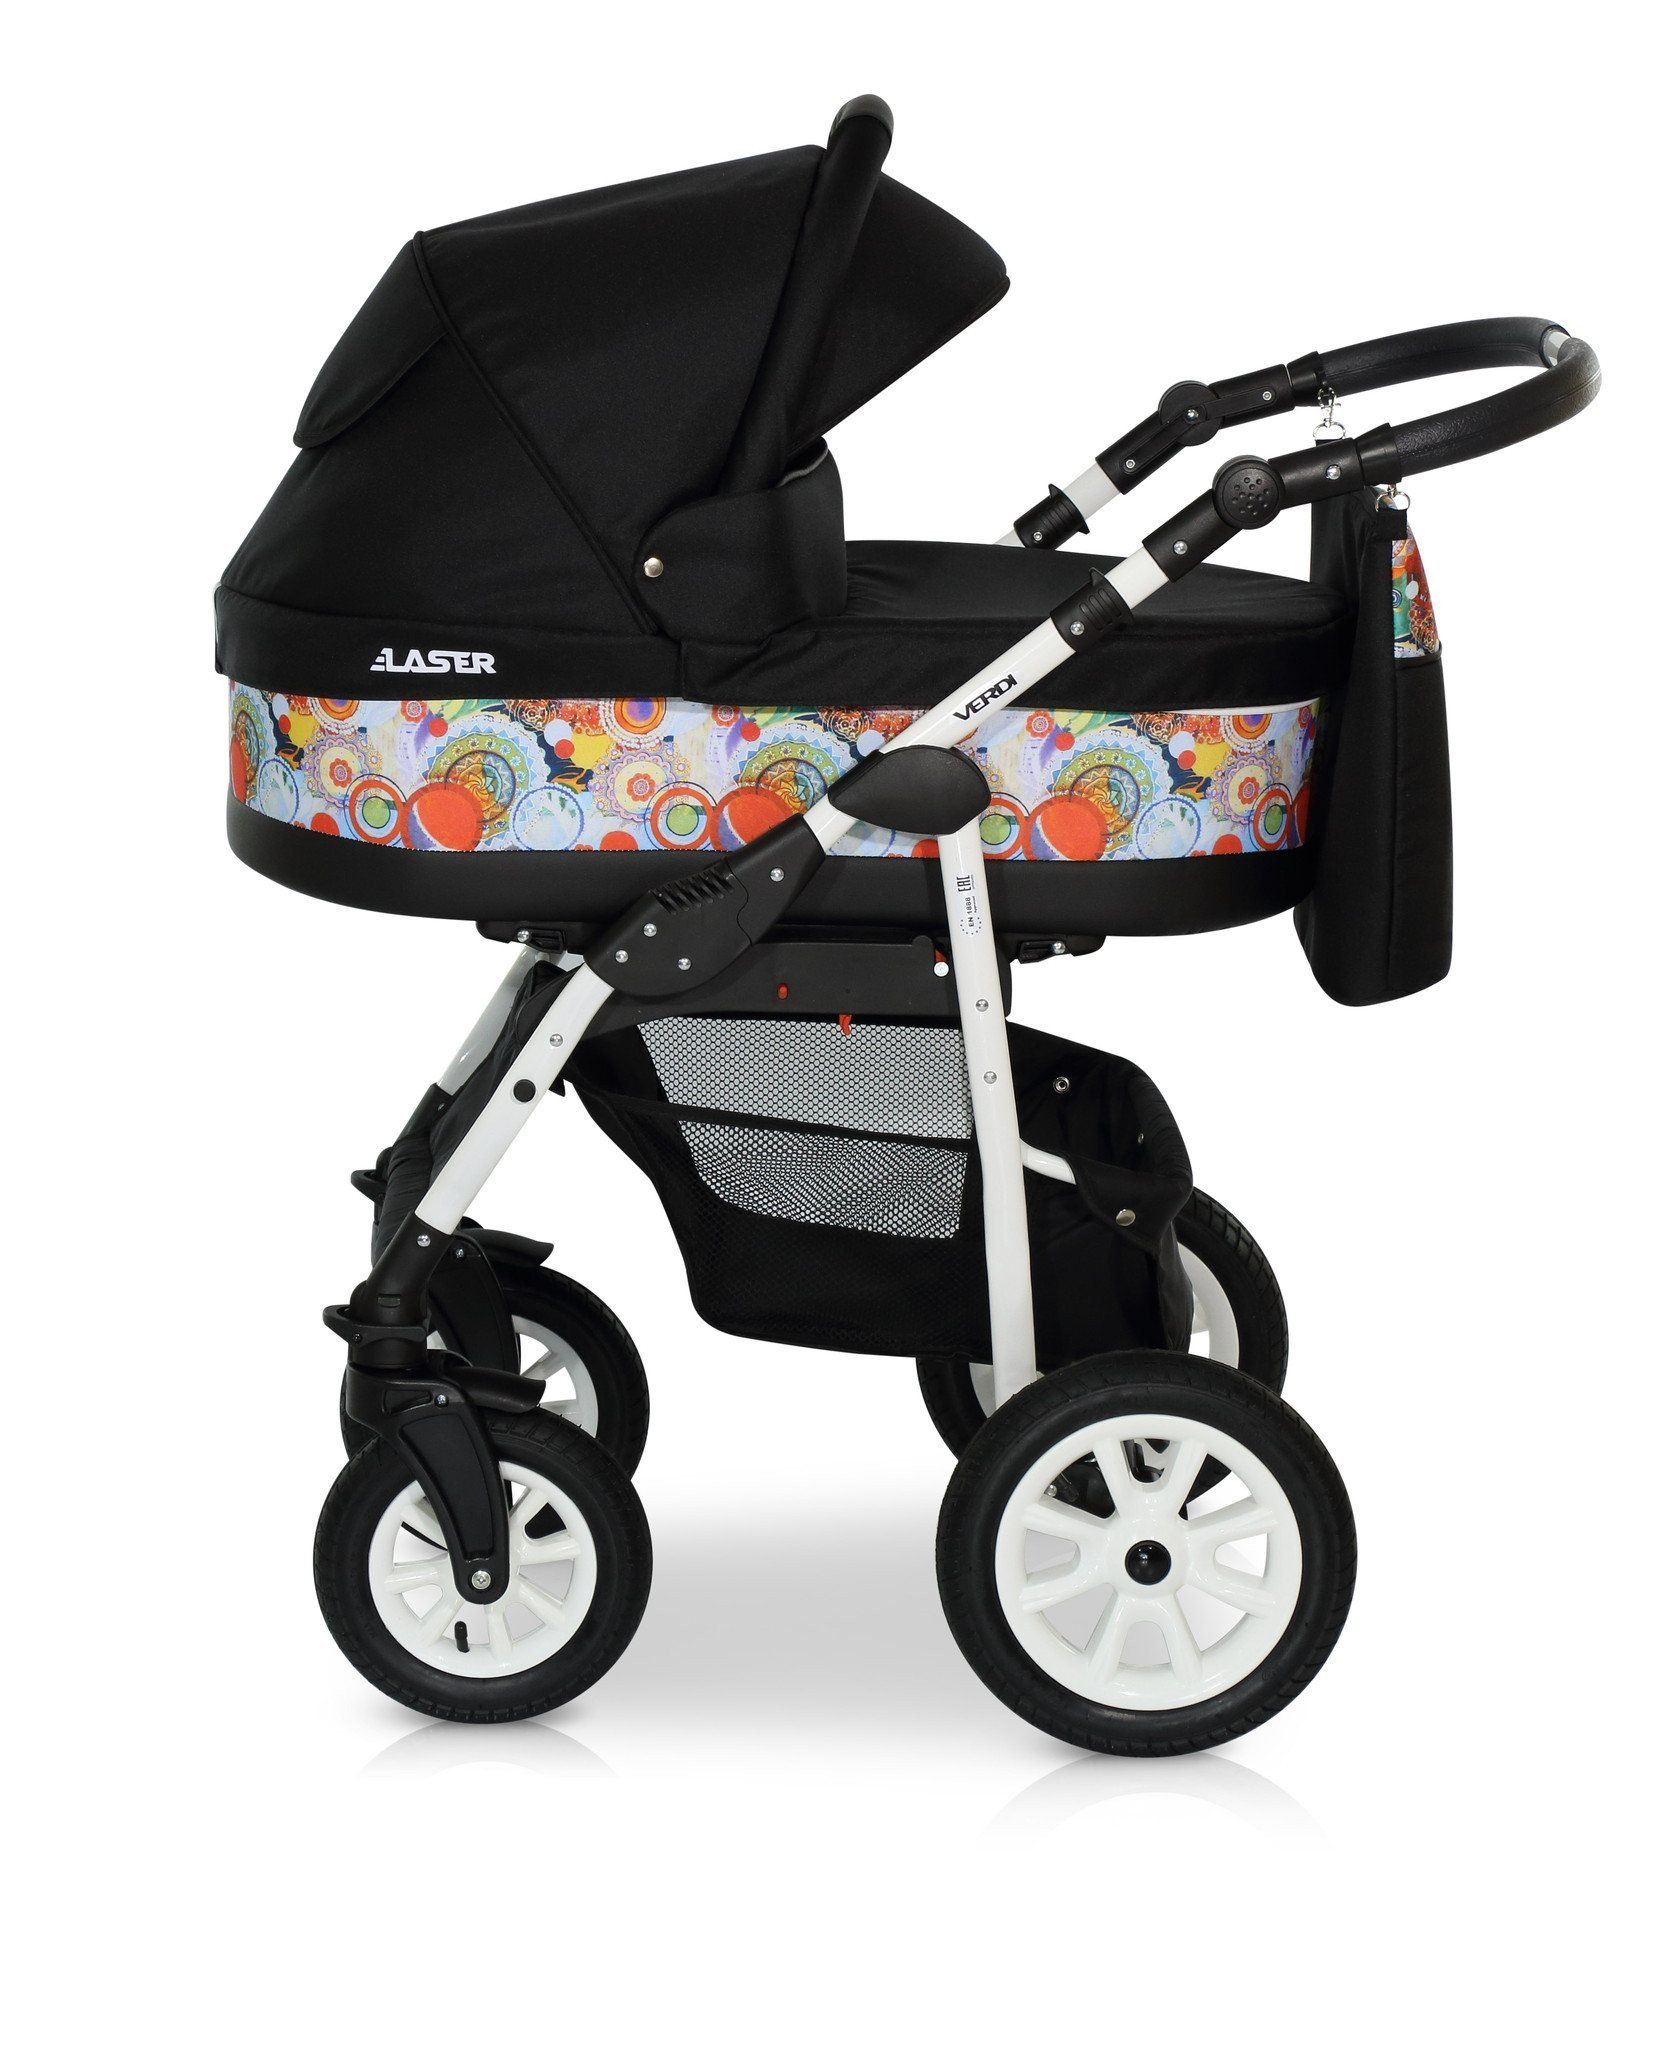 Laser Casual 3in1 Stroller, New baby products, Baby